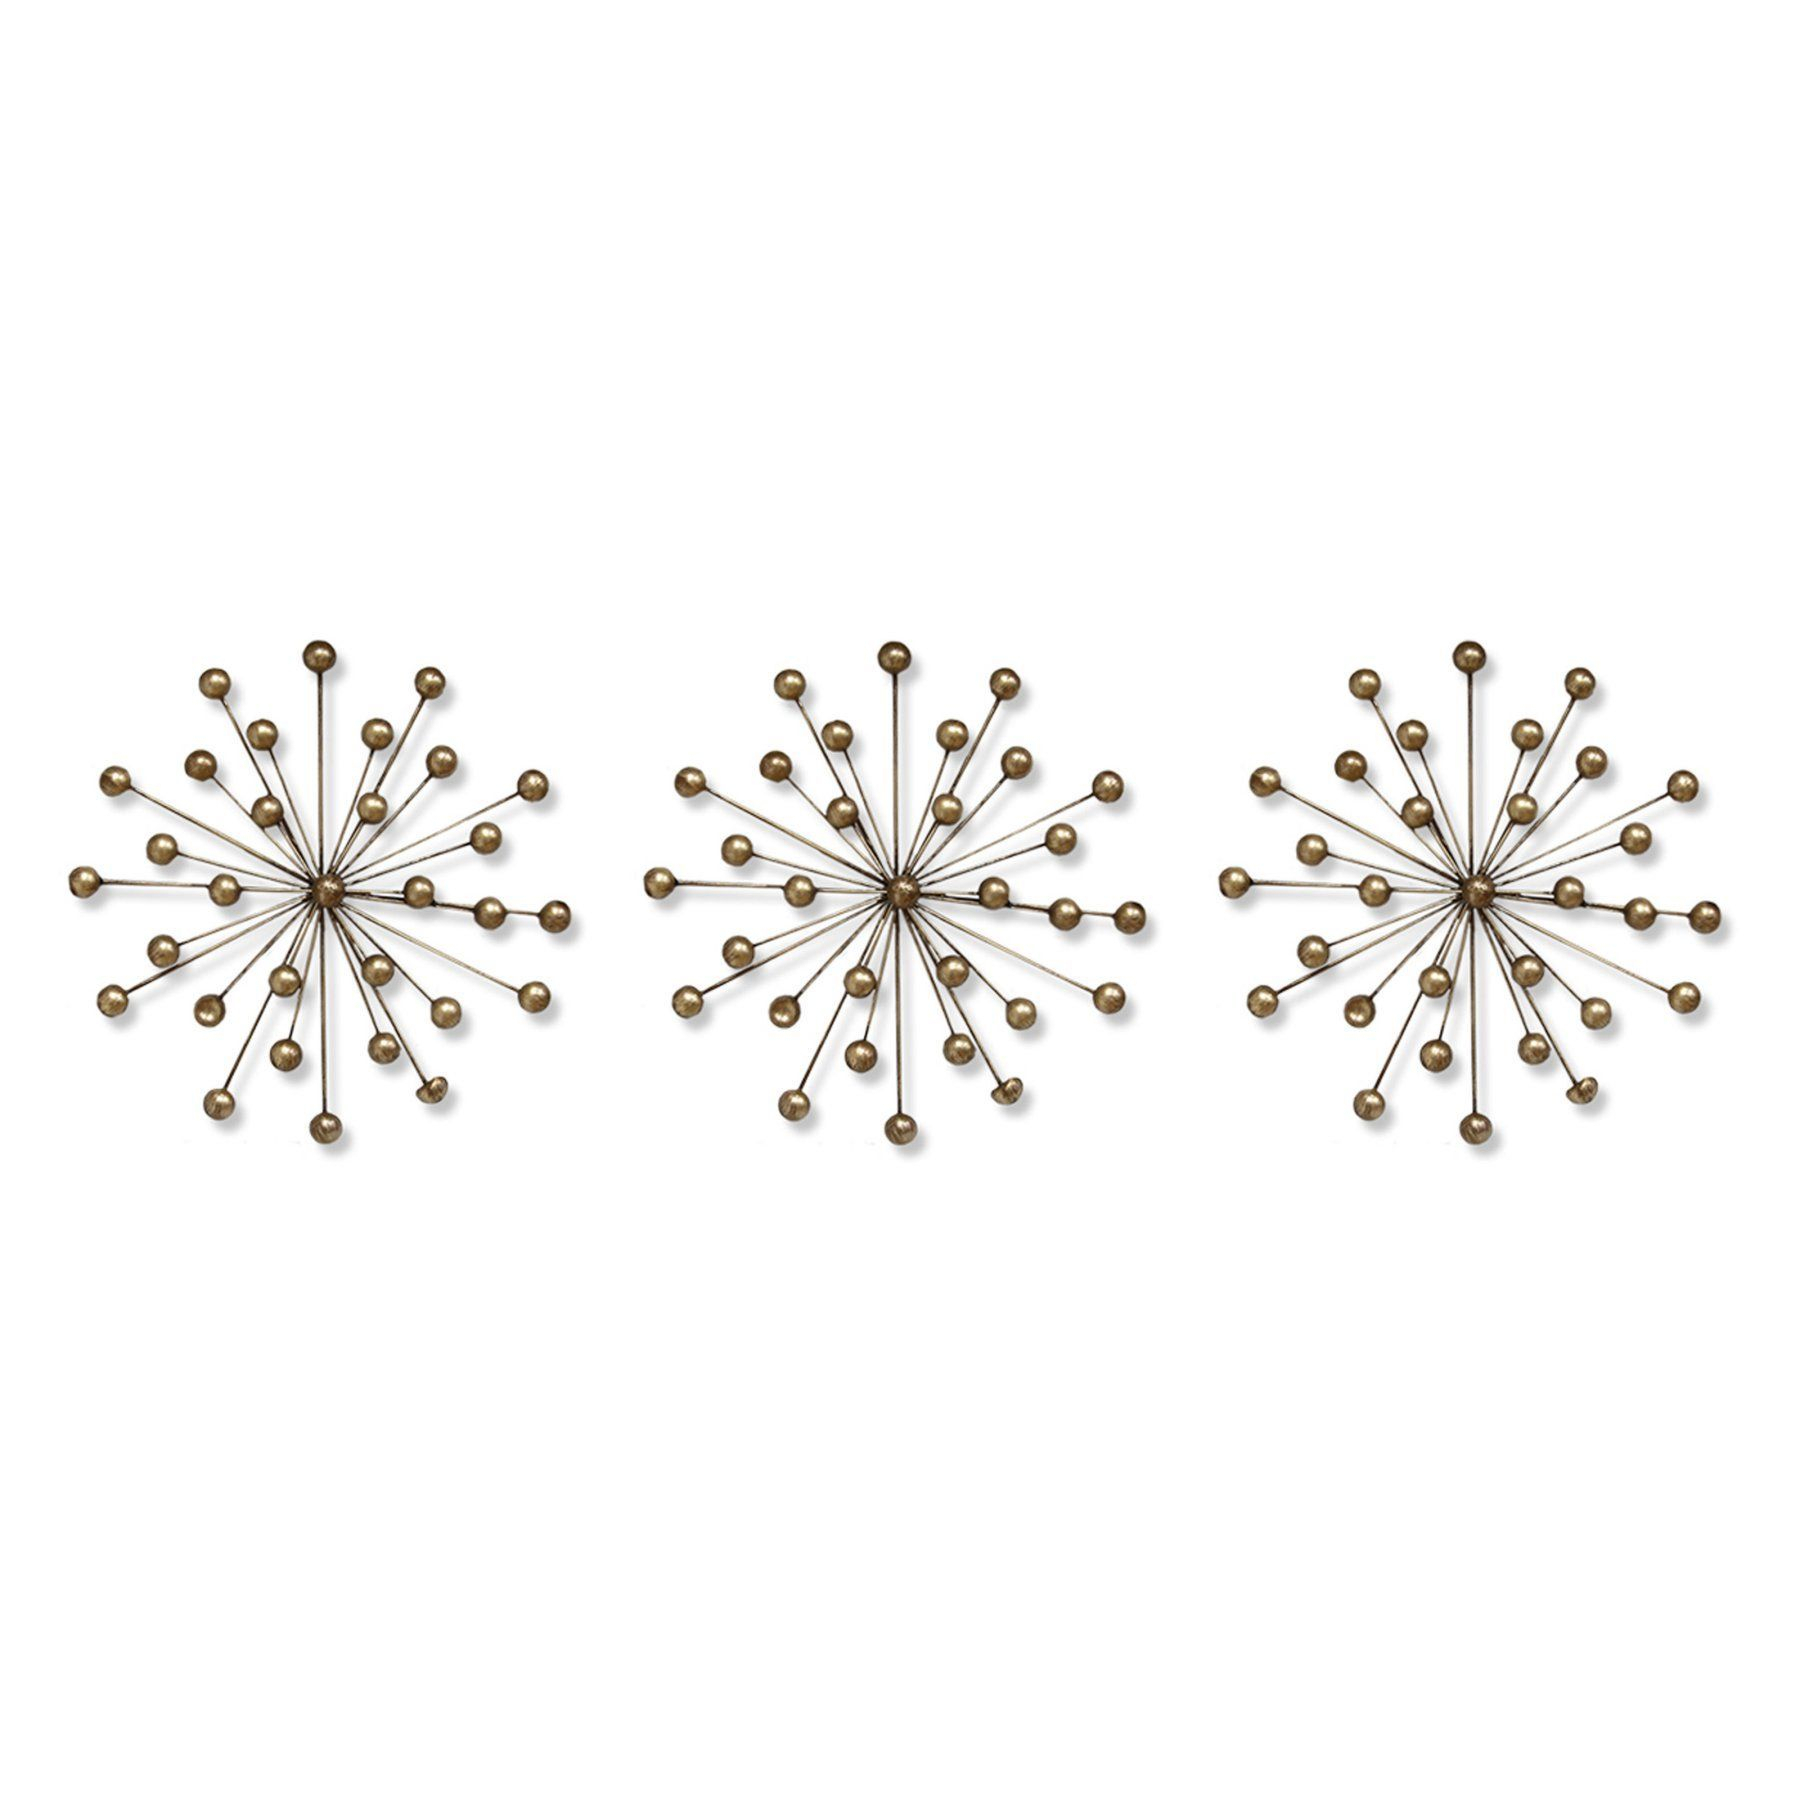 Stratton Home Gold Ball Burst Wall Sculpture – Set Of 3 Pertaining To 3 Piece Acrylic Burst Wall Decor Sets (set Of 3) (View 24 of 30)